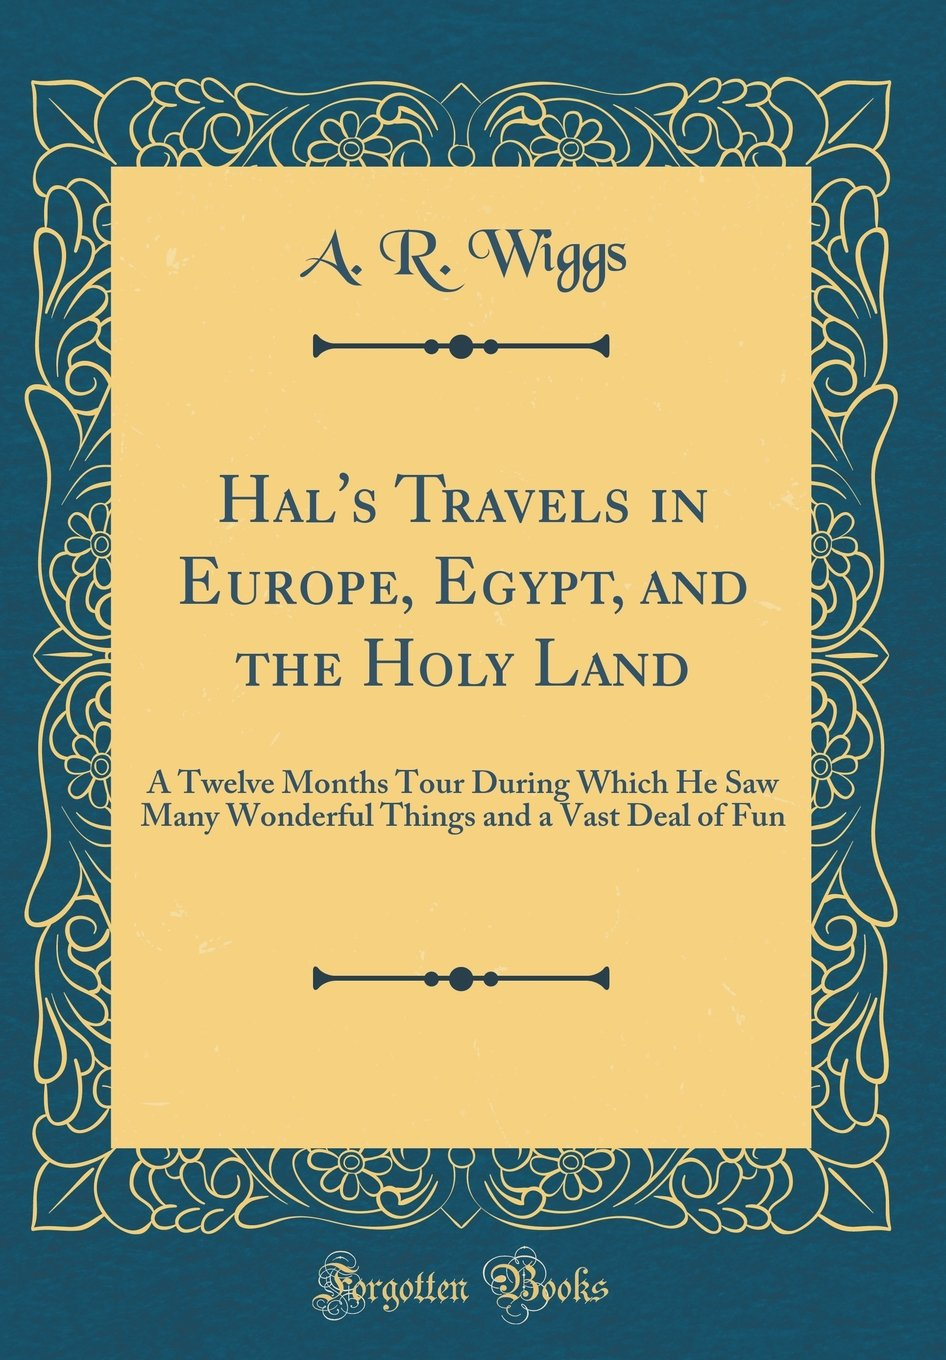 Download Hal's Travels in Europe, Egypt, and the Holy Land: A Twelve Months Tour During Which He Saw Many Wonderful Things and a Vast Deal of Fun (Classic Reprint) PDF